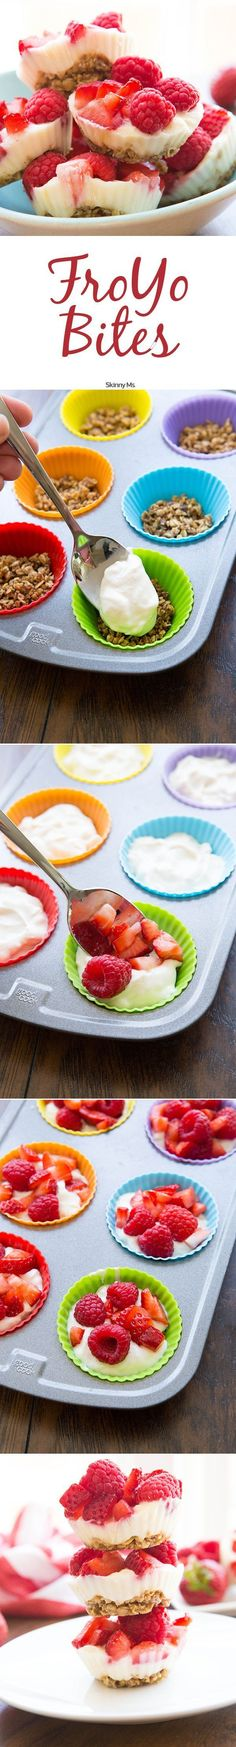 A little Greek yogurt goes a long way in these adorable FroYo bites. Try these healthy frozen yogurt treats for a refreshing and cooling dessert that's good for you. #froyo